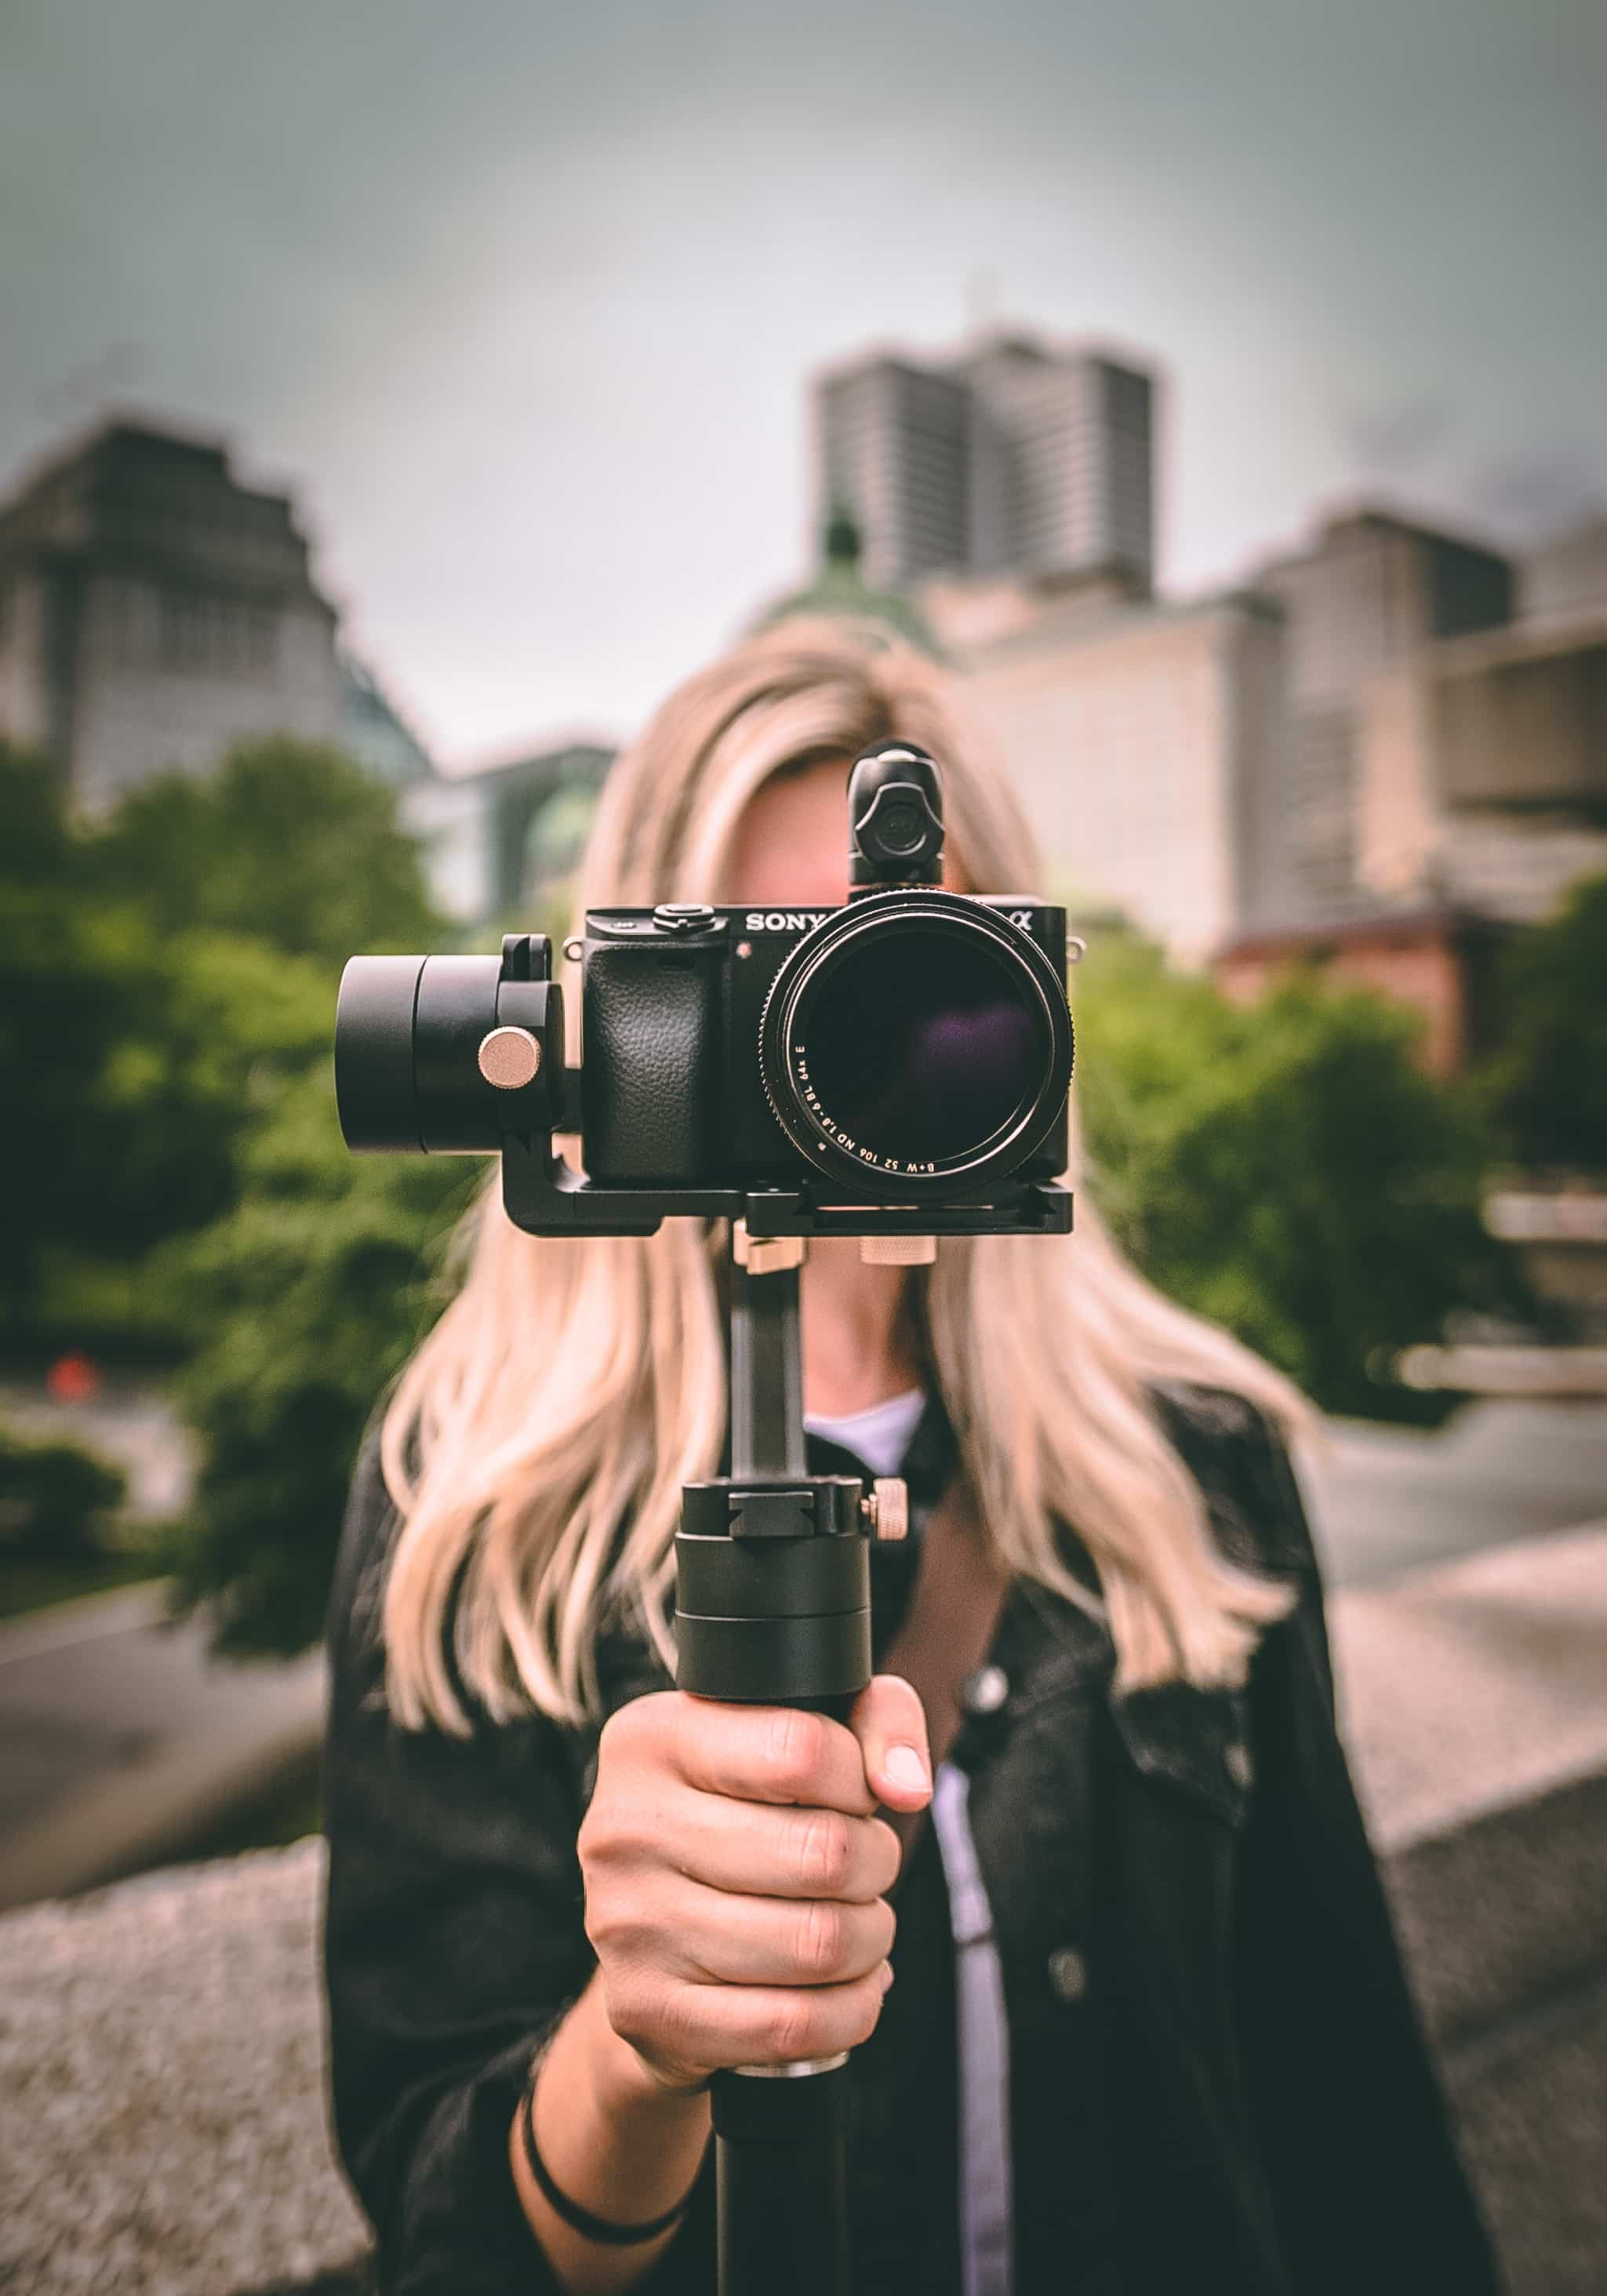 Video production companies need to embrace collaboration tools for video